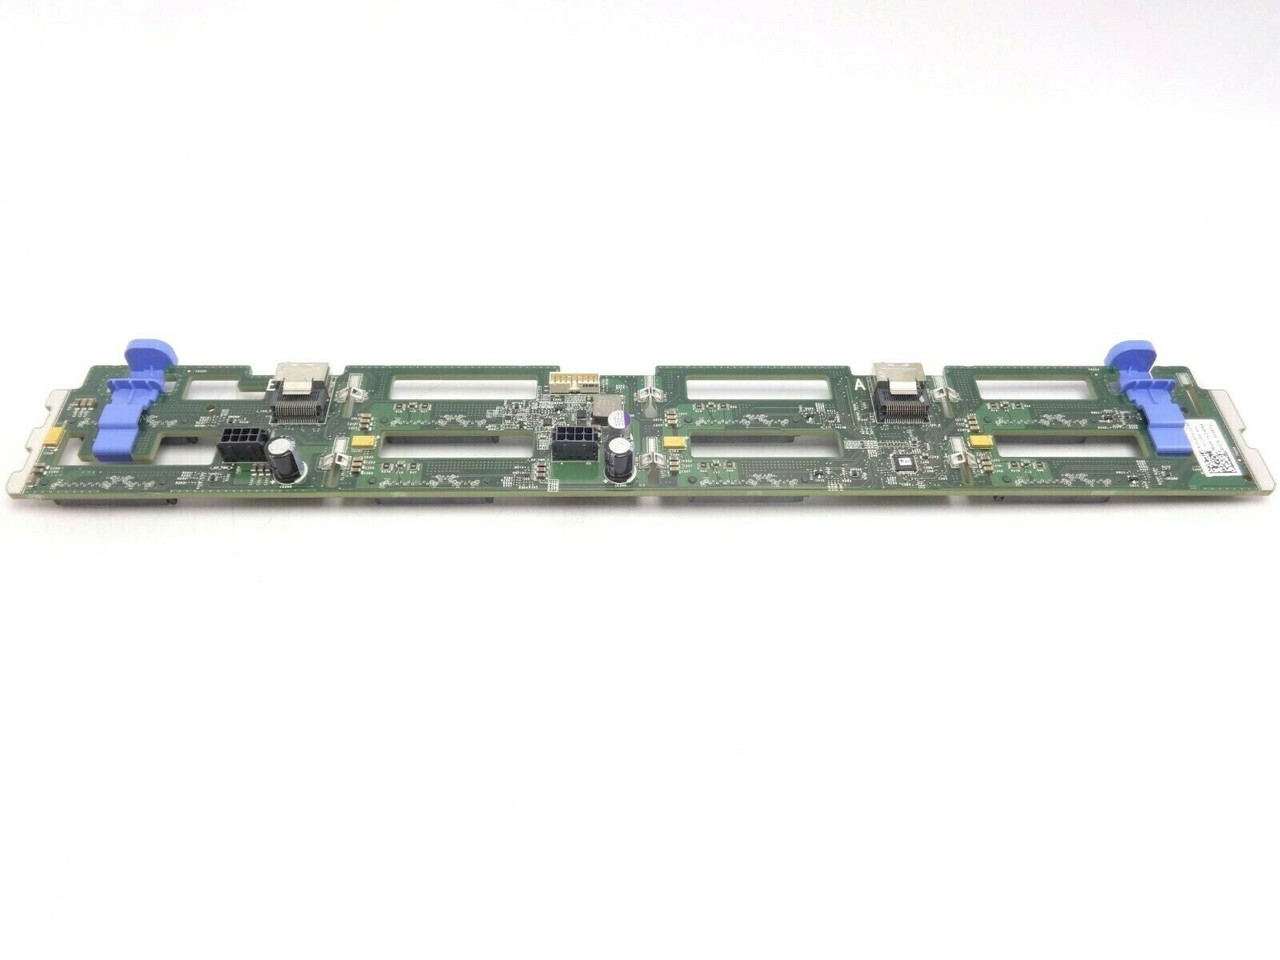 Dell Y4HYG R720 8 bay 3.5inch LFF Hard Drive Backplane